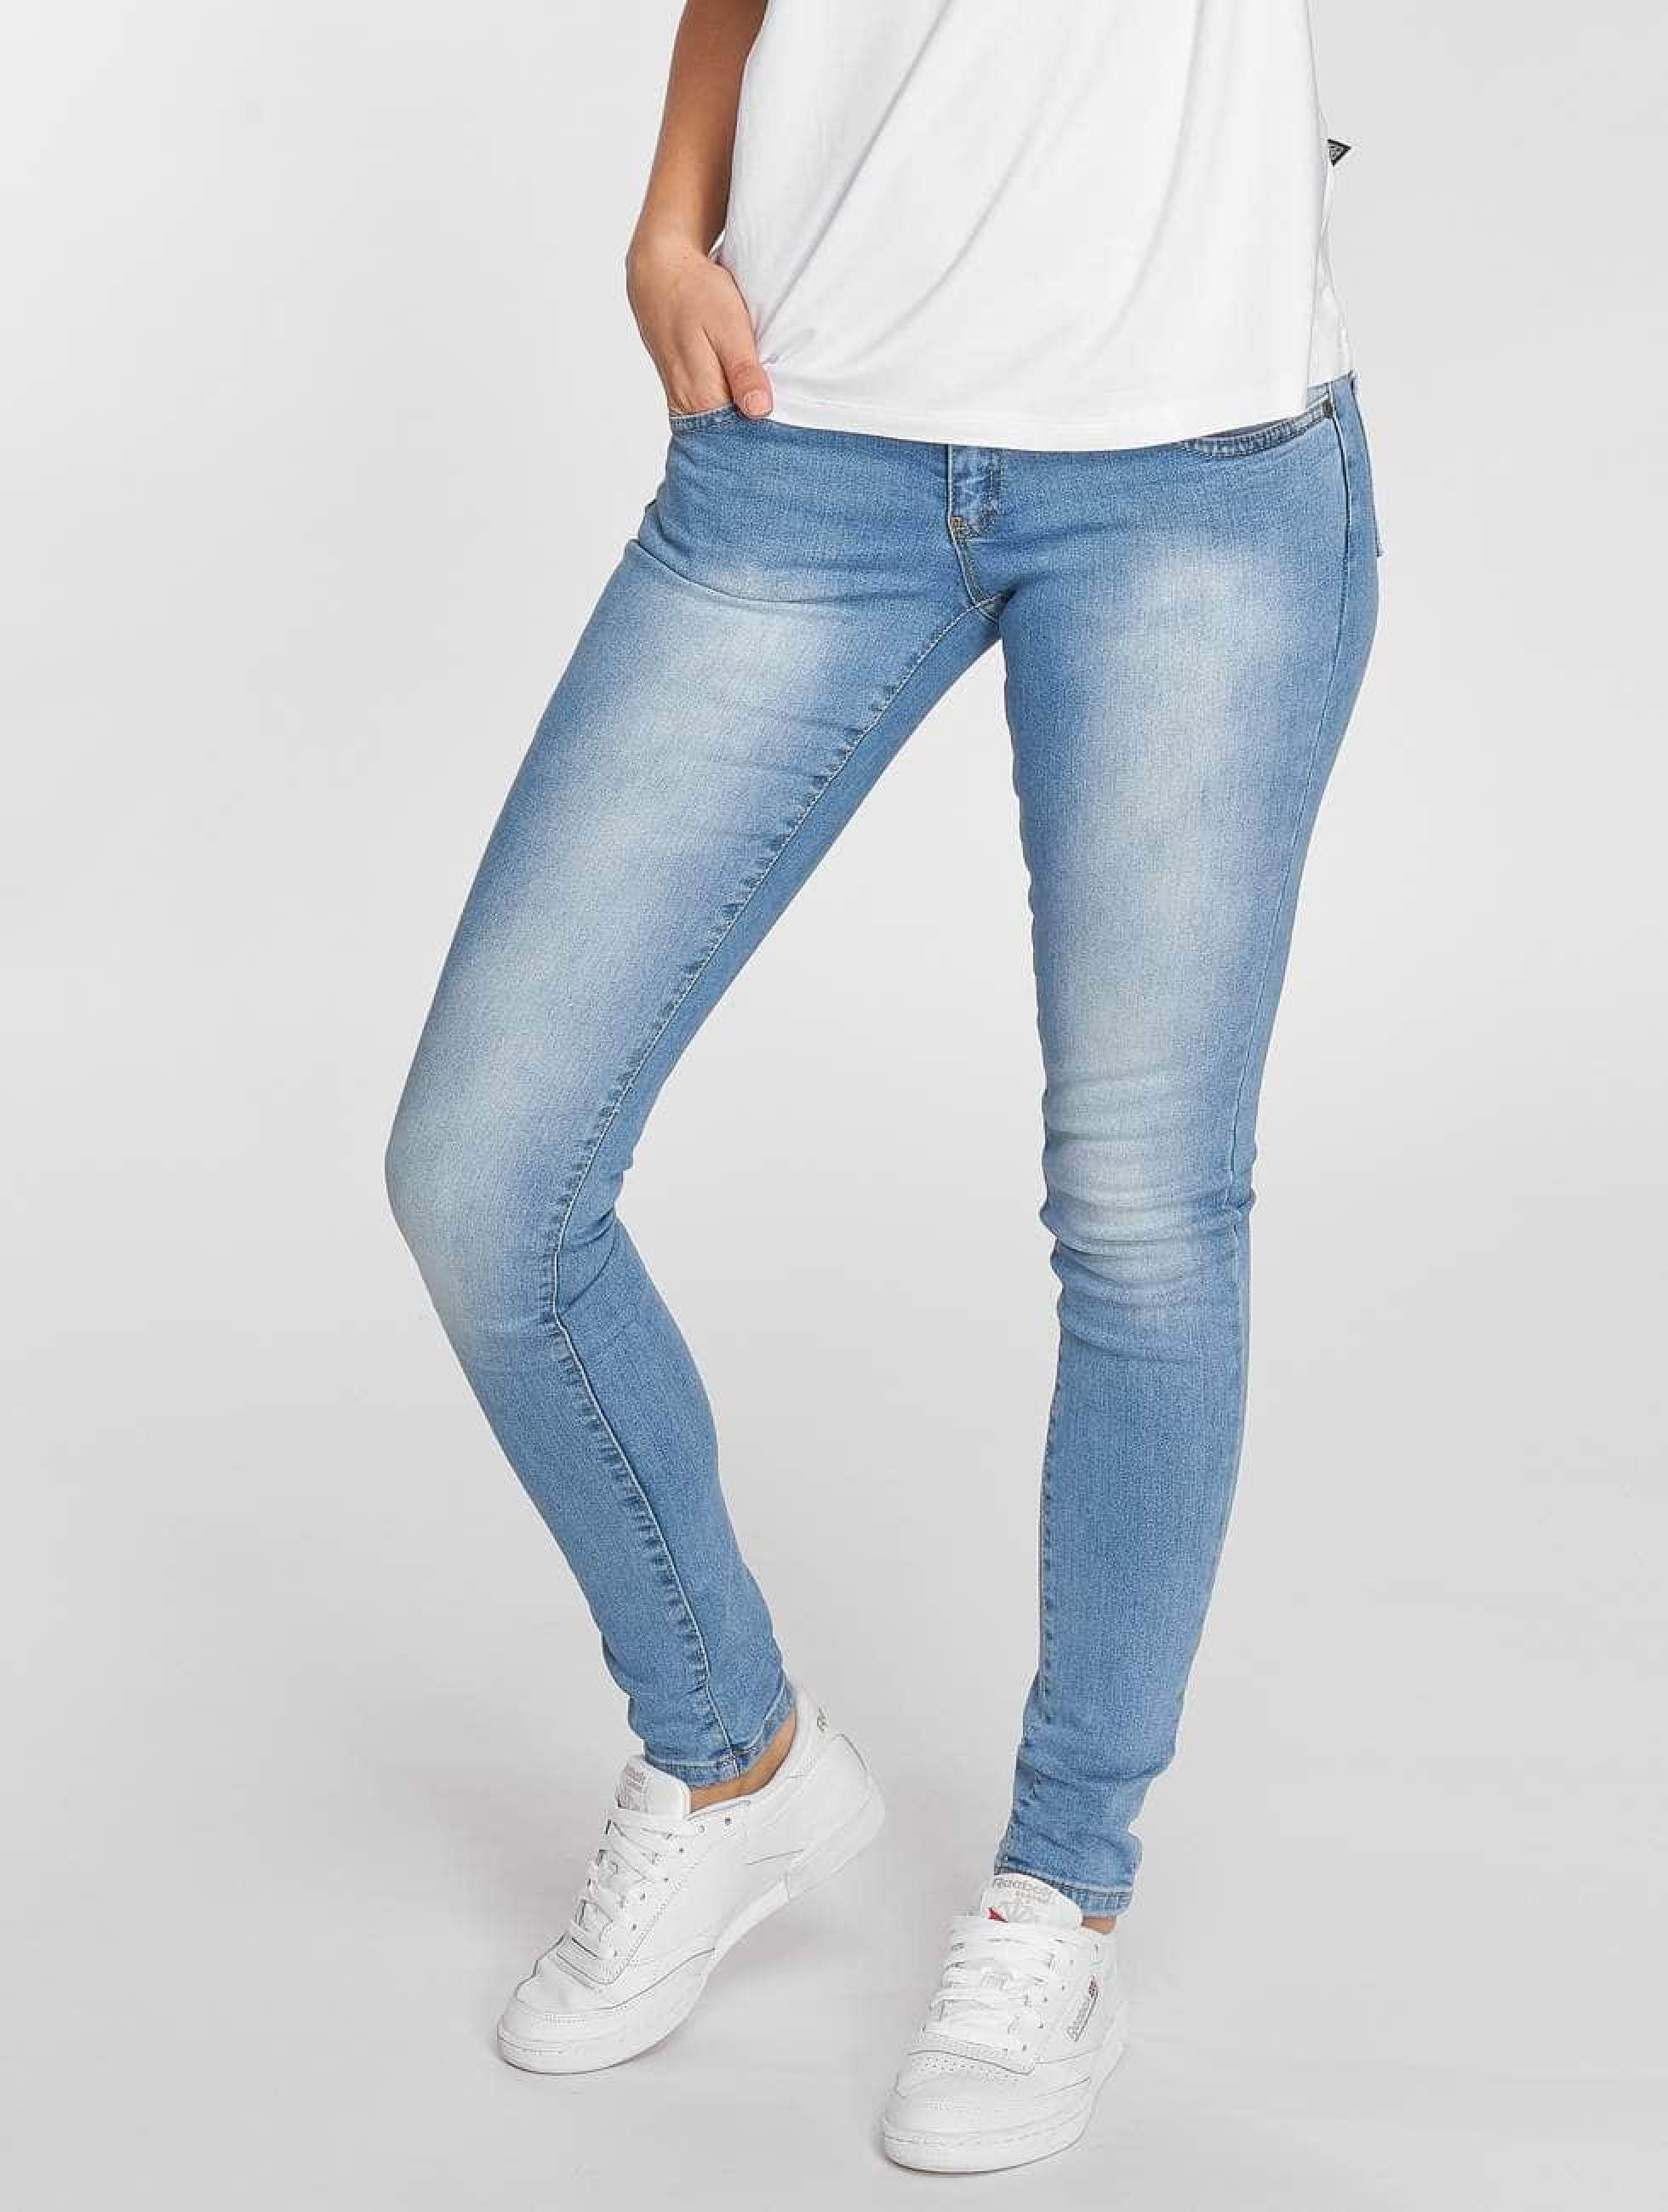 Just Rhyse / Skinny Jeans Blossom in blue W 32